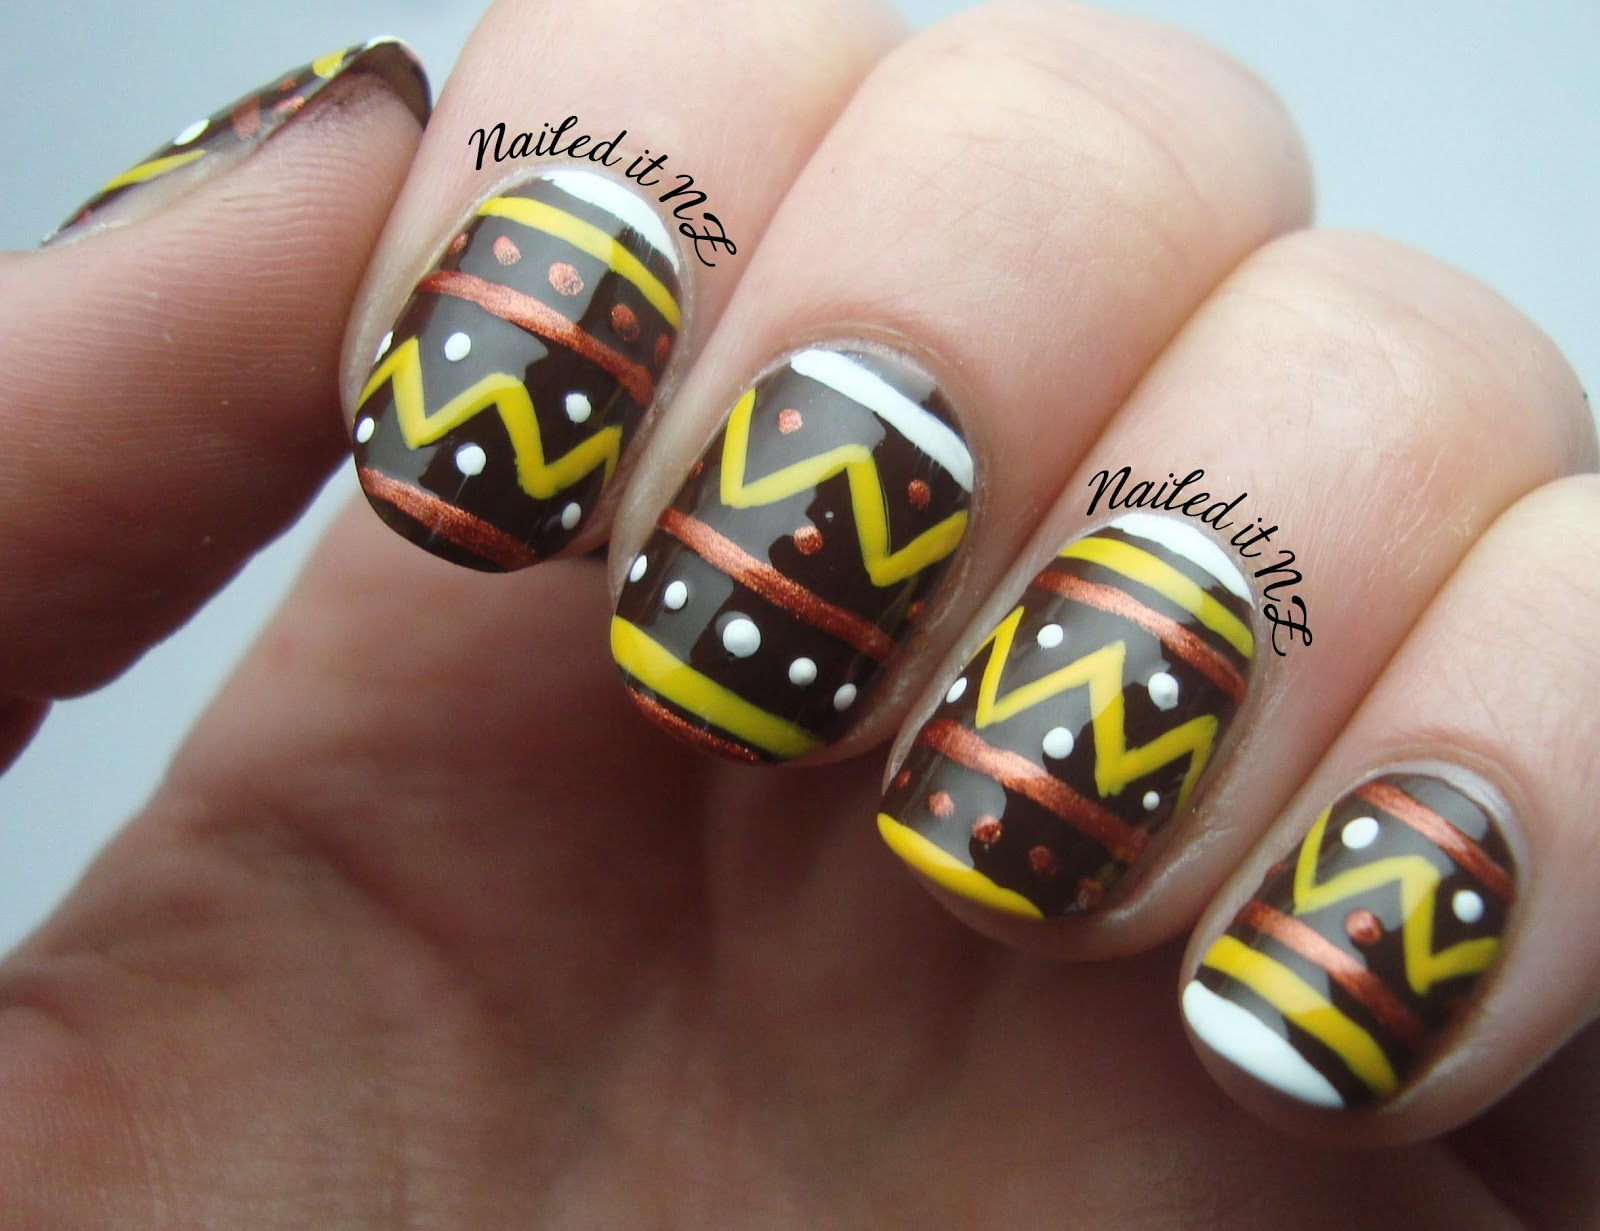 Nail art for short nails #7 - Tribal nails